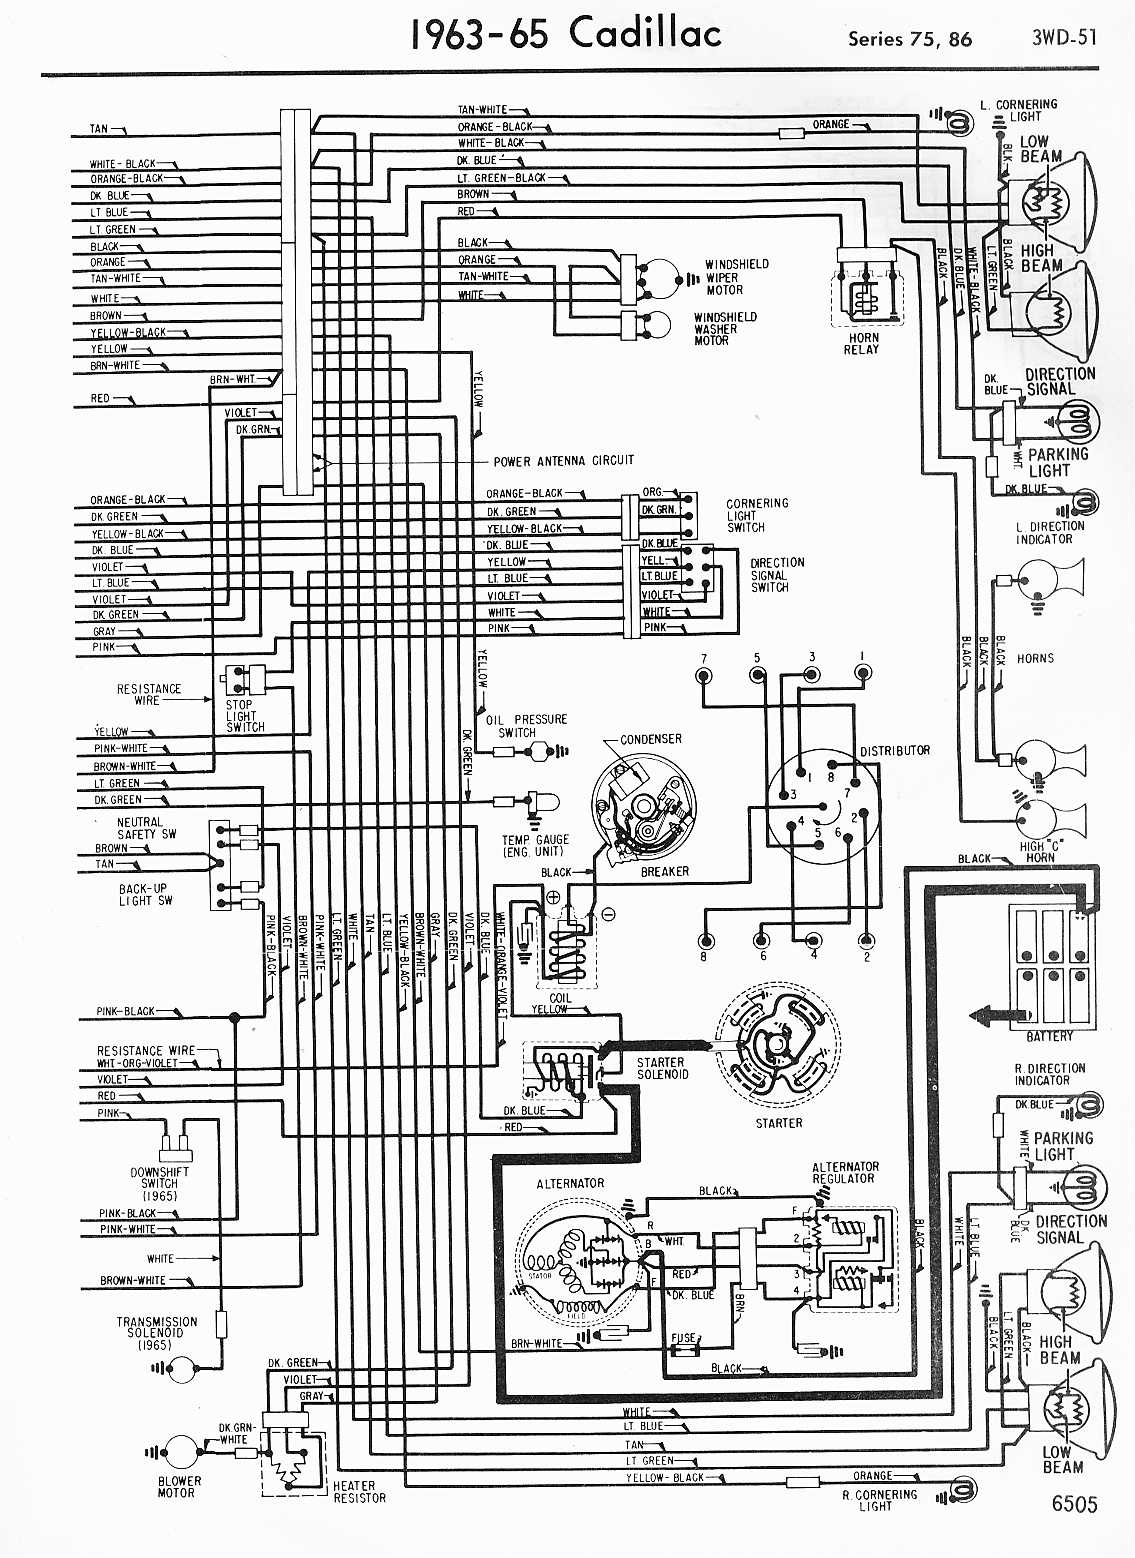 cadillac wiring diagrams 1957 1965 1993 Isuzu NPR Wiring-Diagram 1965 series 75 right � more buick ads � buick wiring diagrams